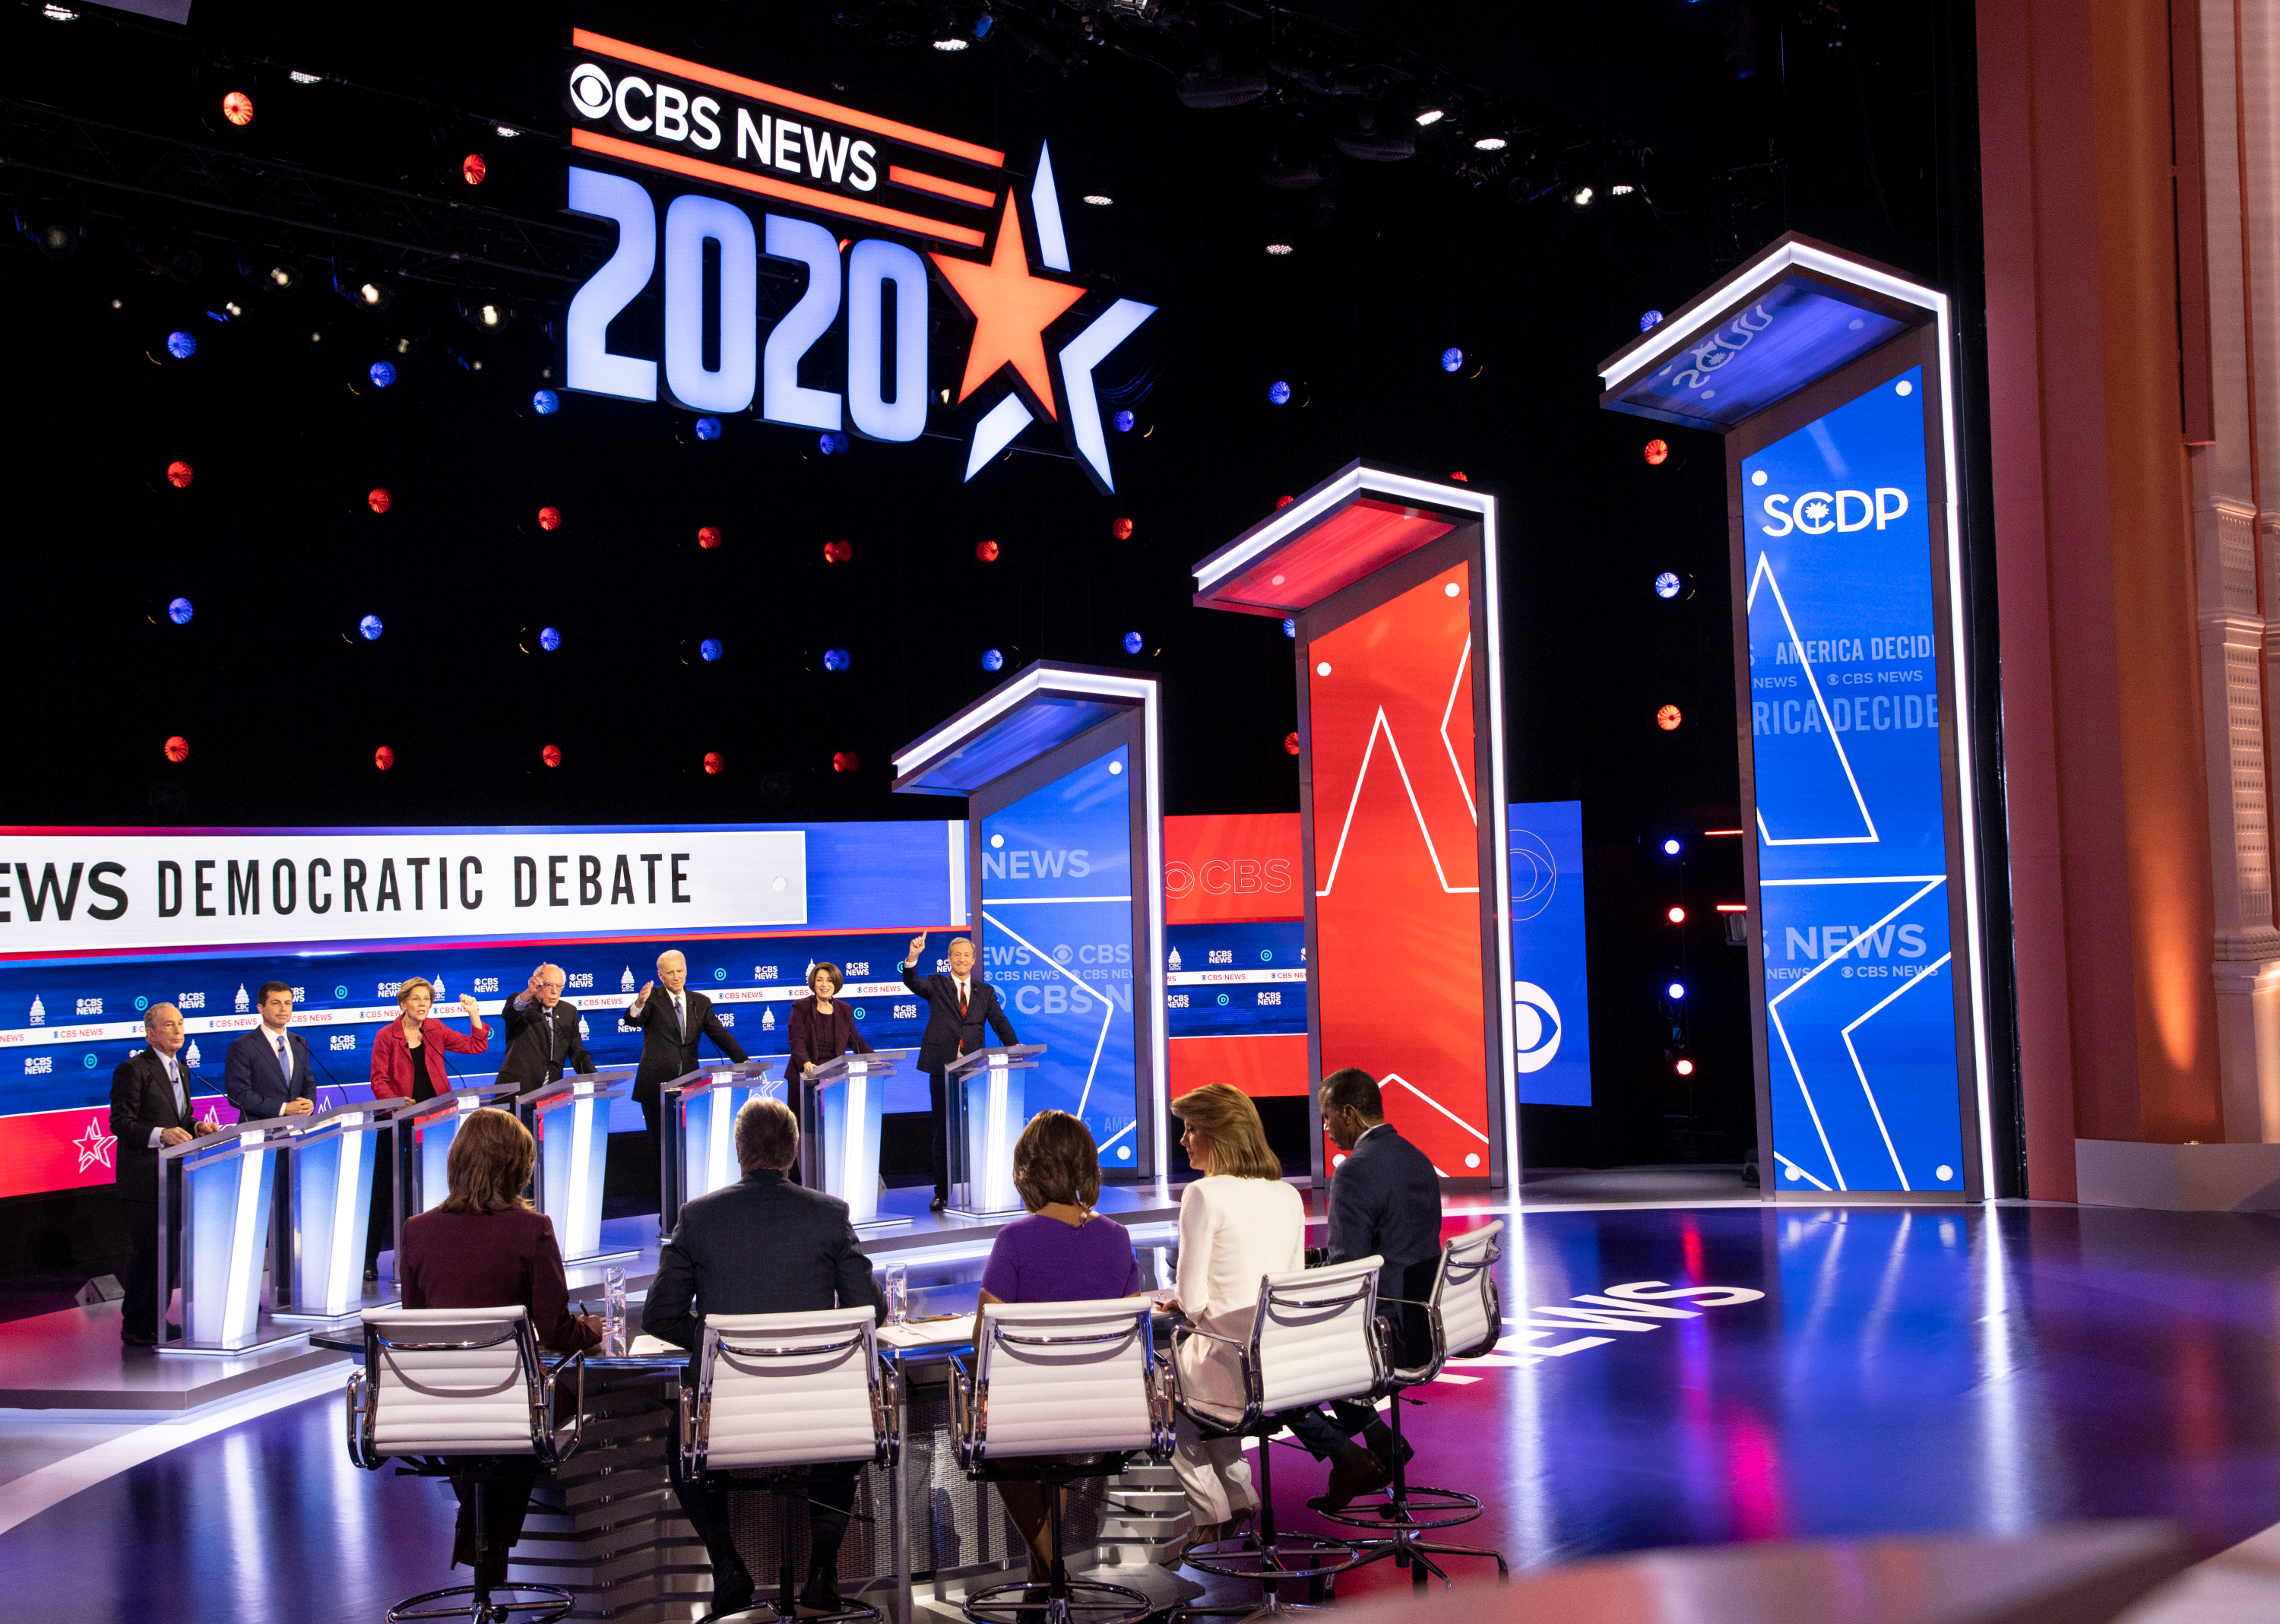 Despite criticism, more than 15.8 million people tuned into chaotic Democratic debate on CBS